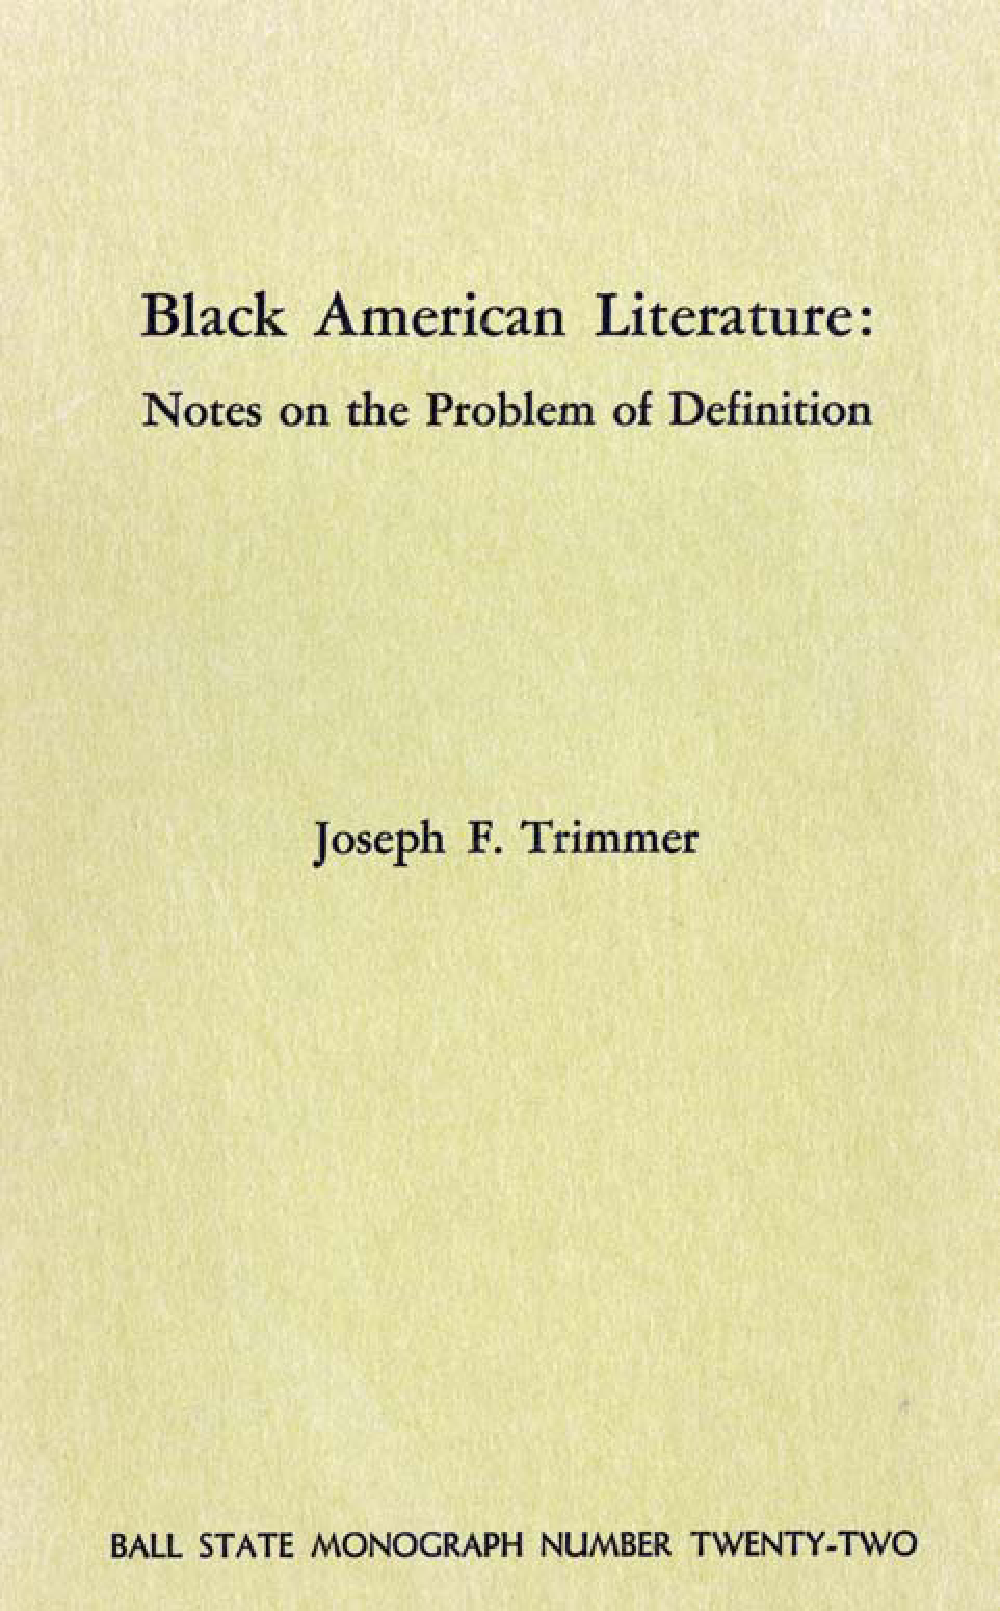 Black American literature: notes on the problem of